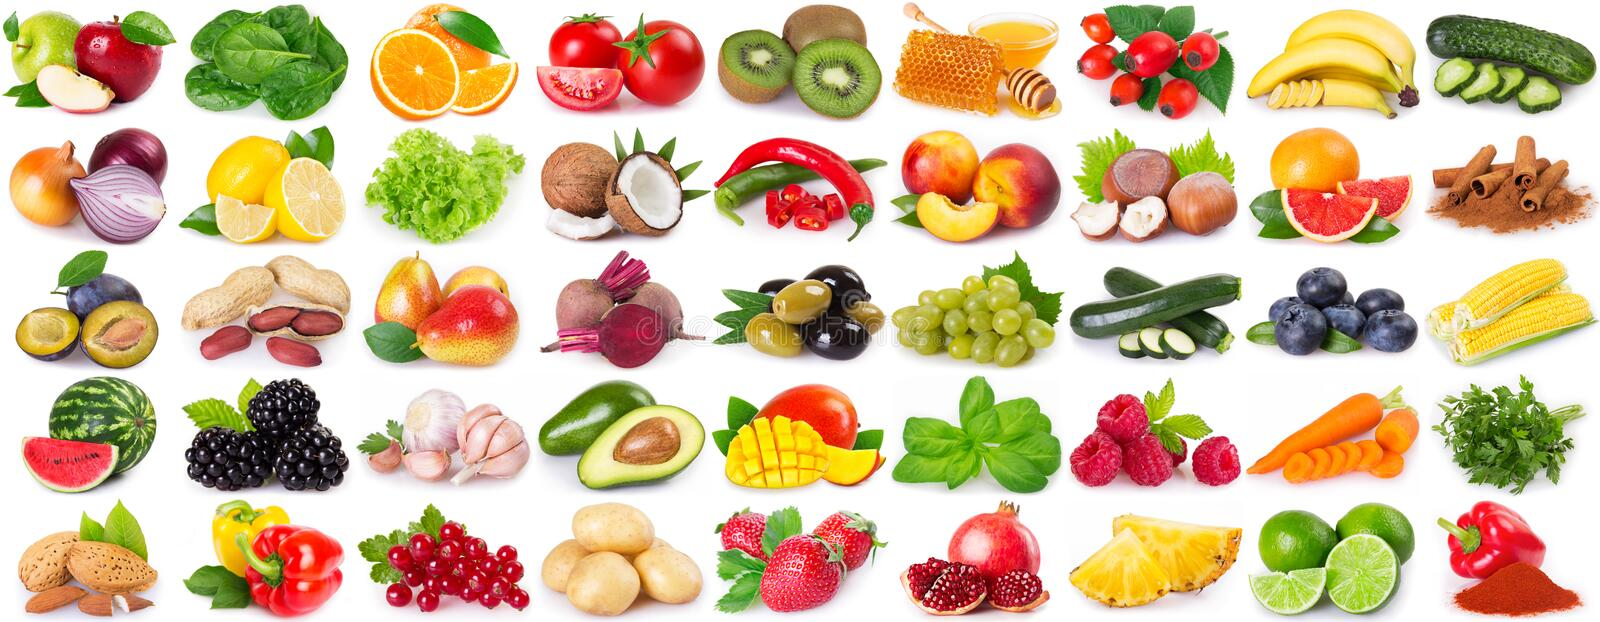 Collection of healthy food on white background. Collection of healthy food isolated on white background, set of fresh fruits and vegetables royalty free stock images